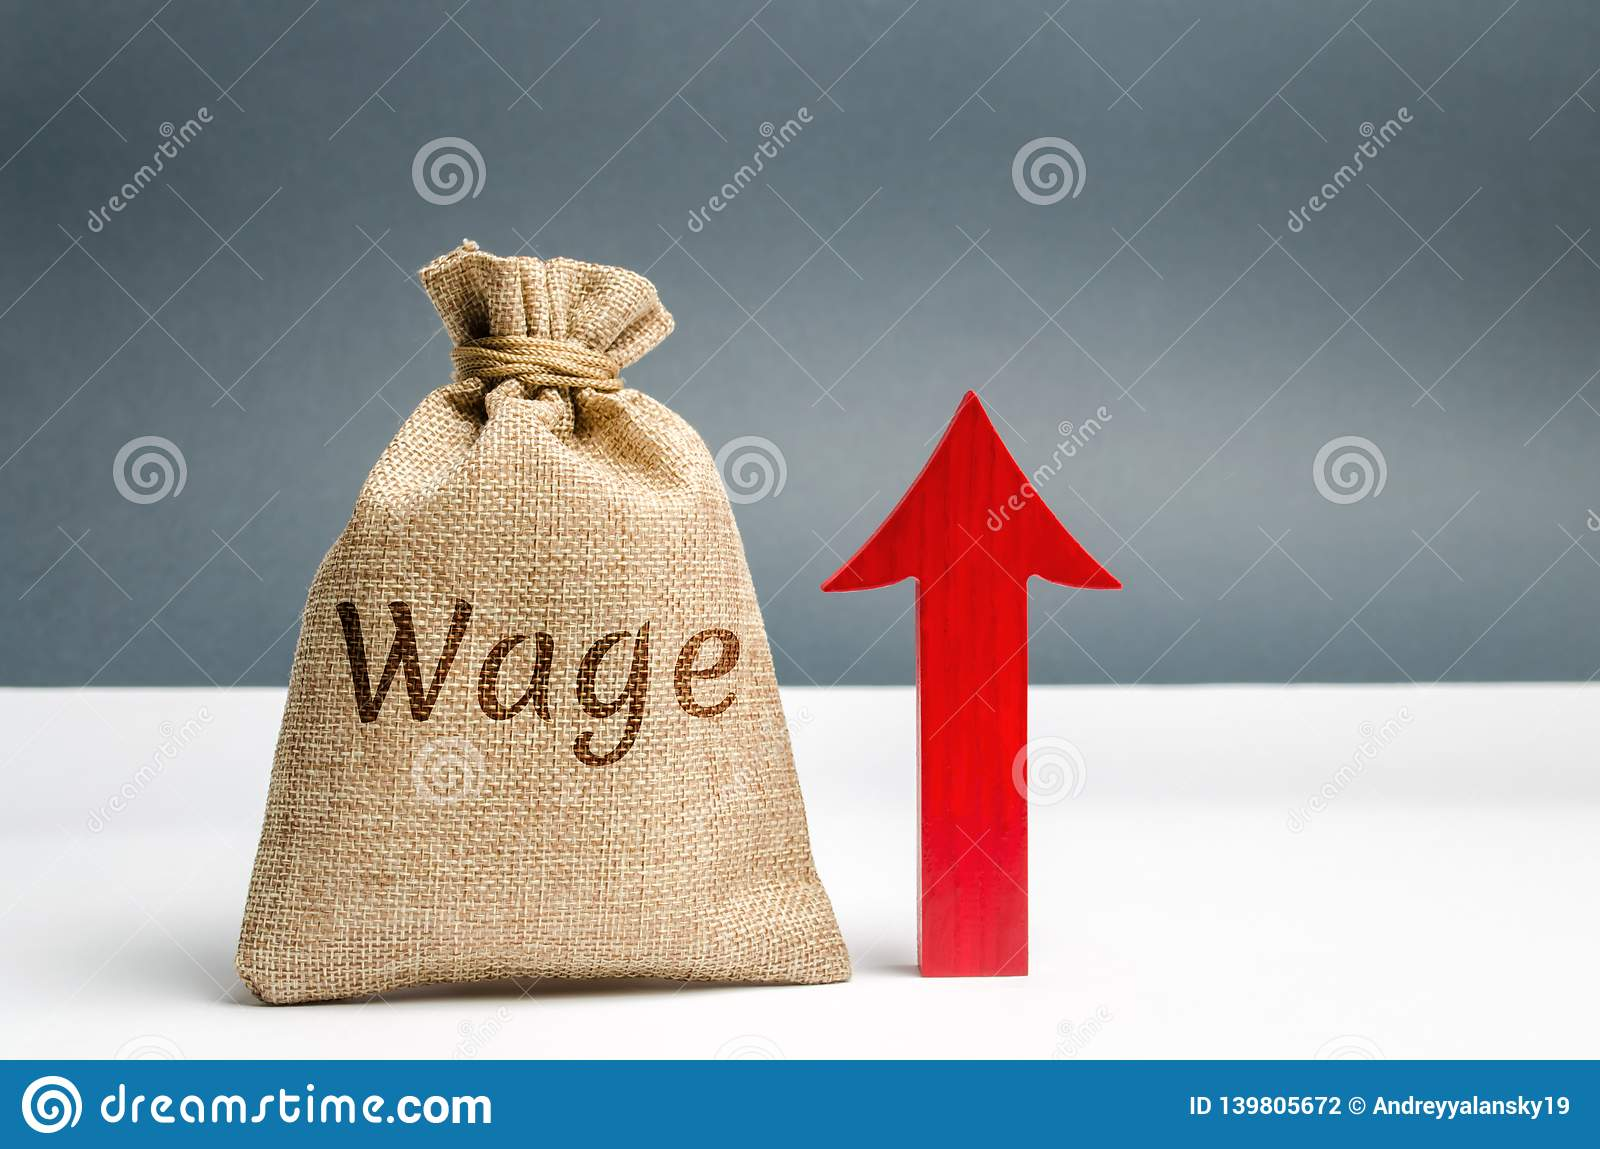 Bag with money and word Wage and up arrow. Increase of salary. Wage rates. Career growth. Increase profits and family budget.